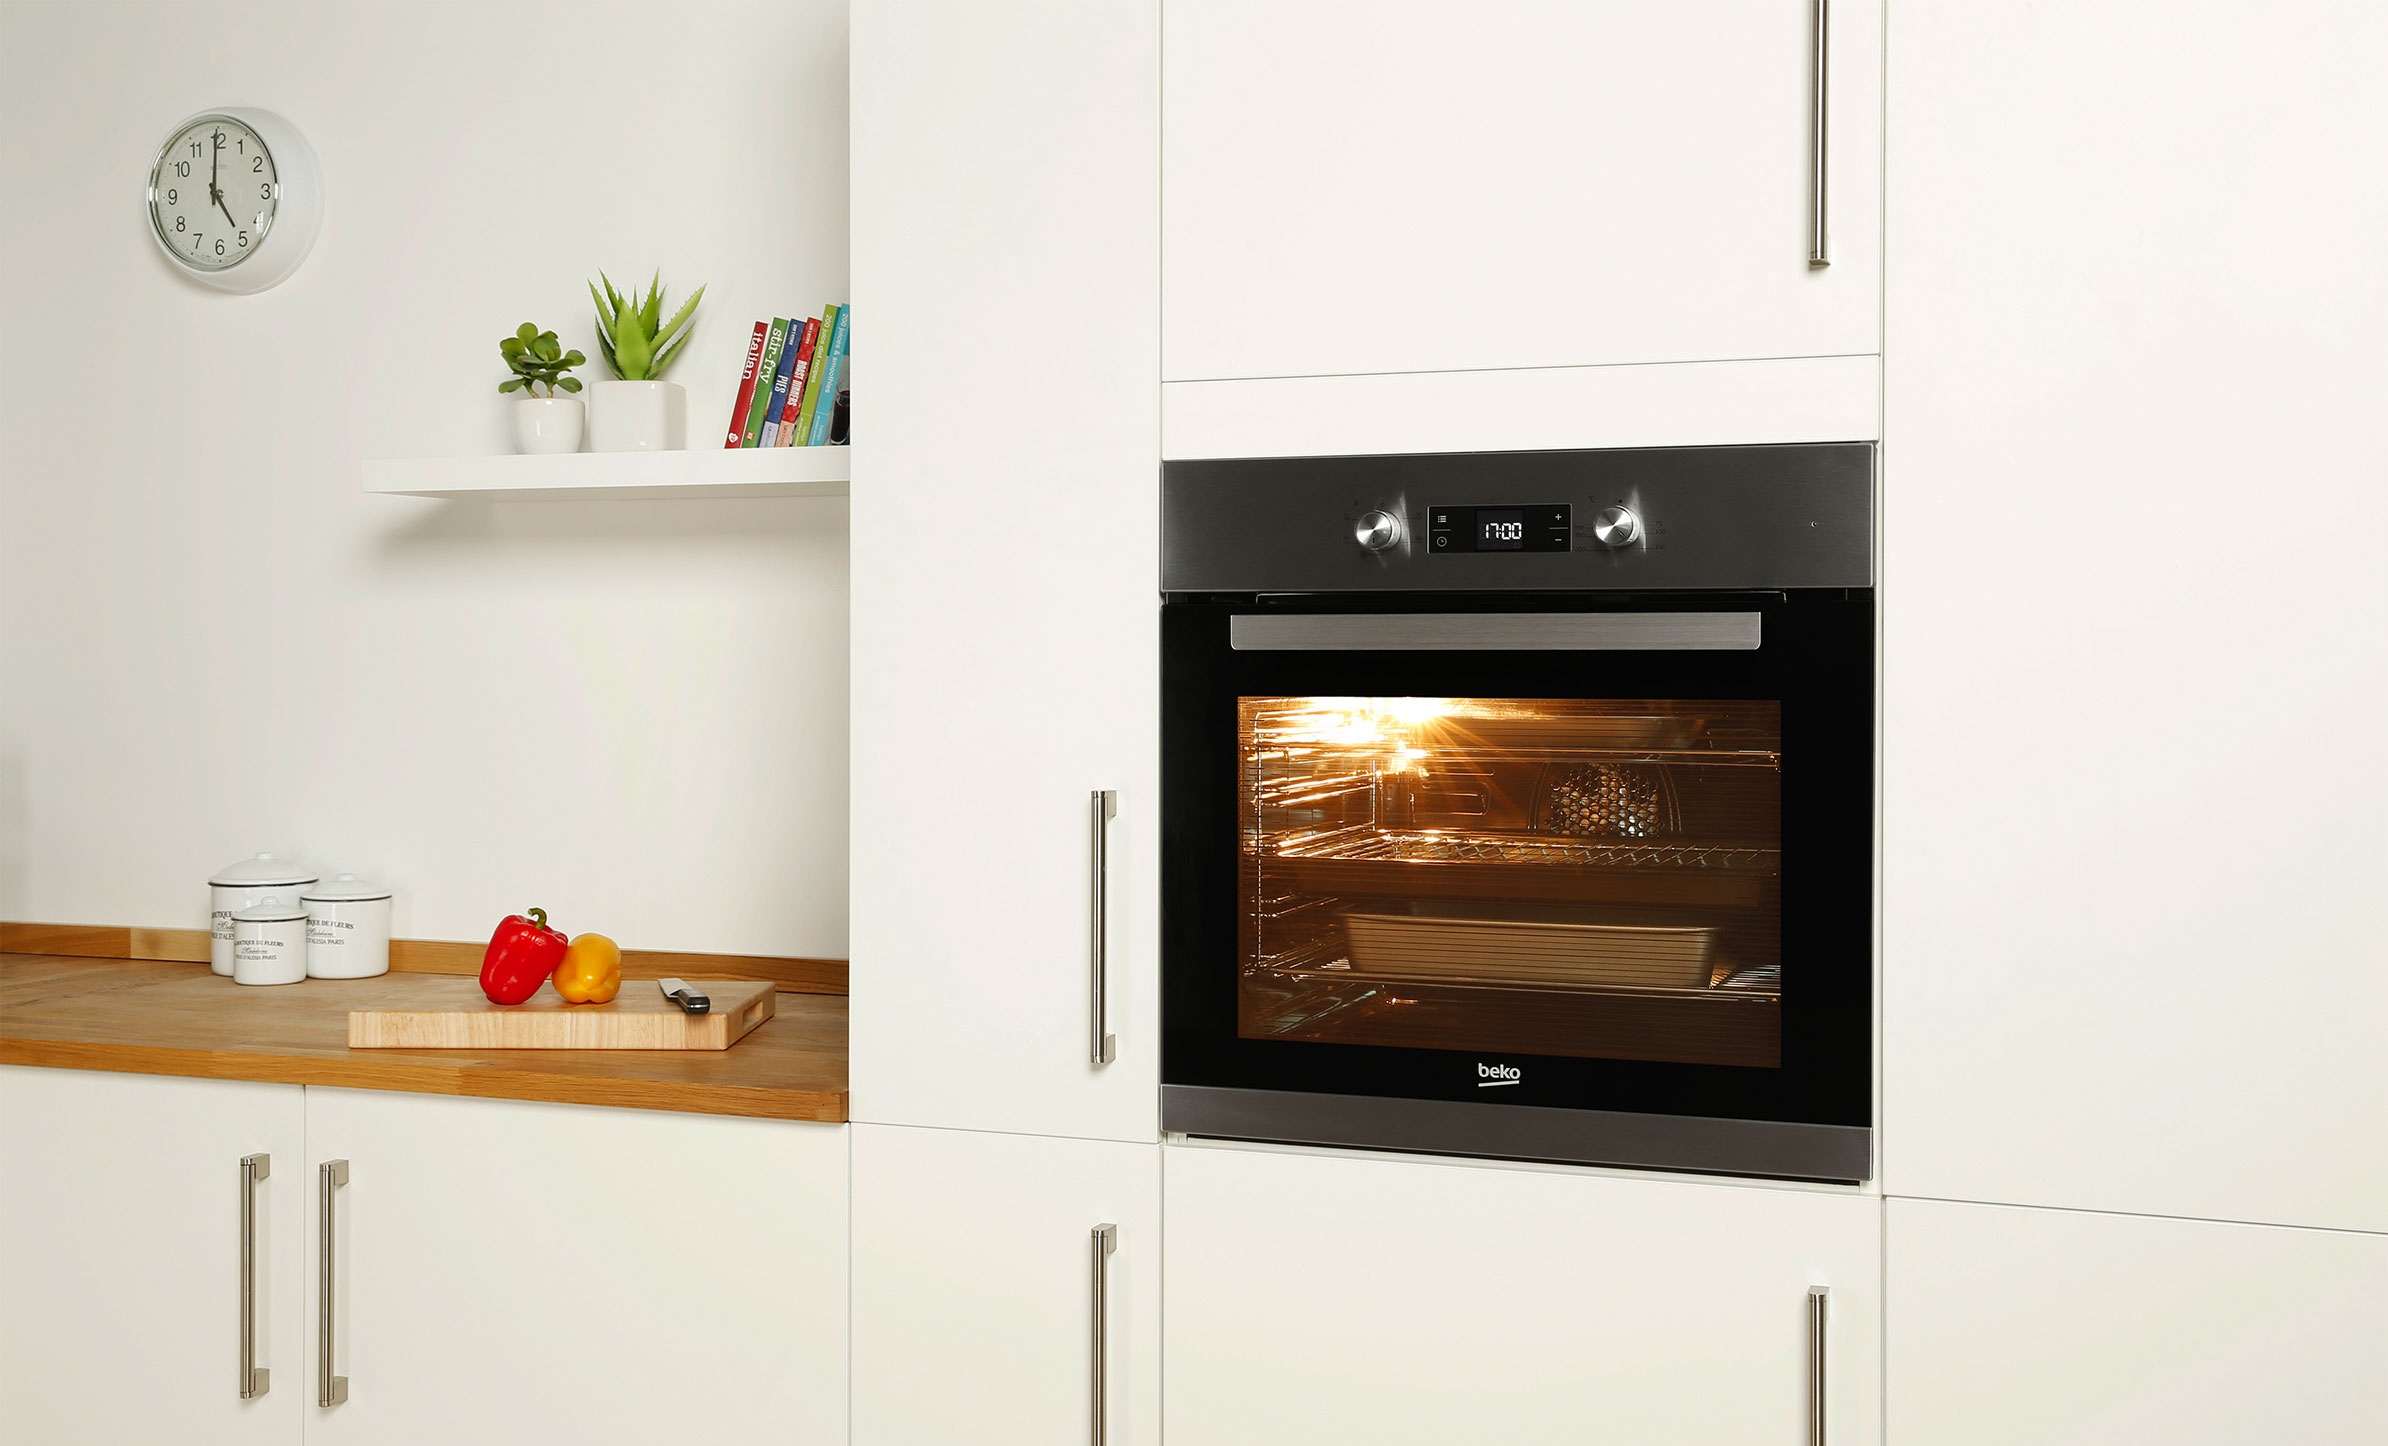 beko kitchens at ao com beko appliances from ao com  rh   ao com